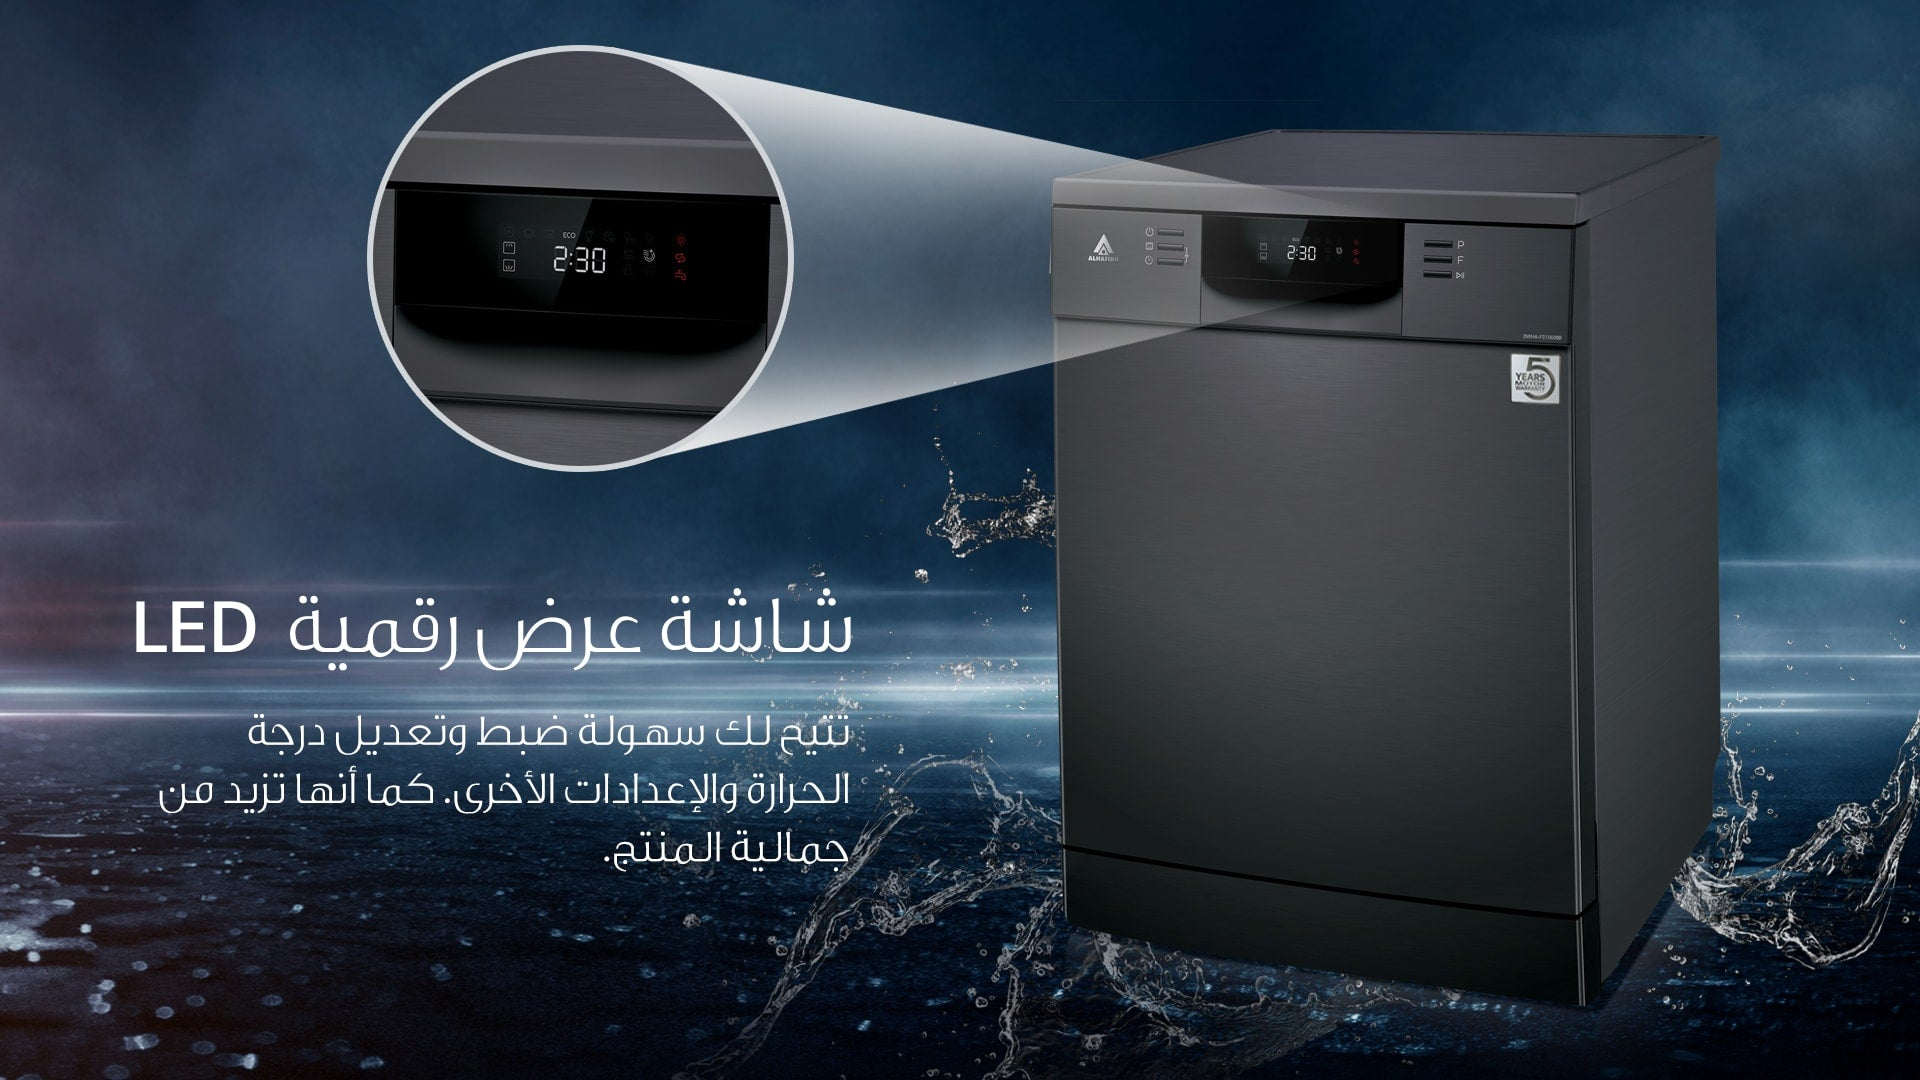 ALHAFIDH Dishwasher LED Display